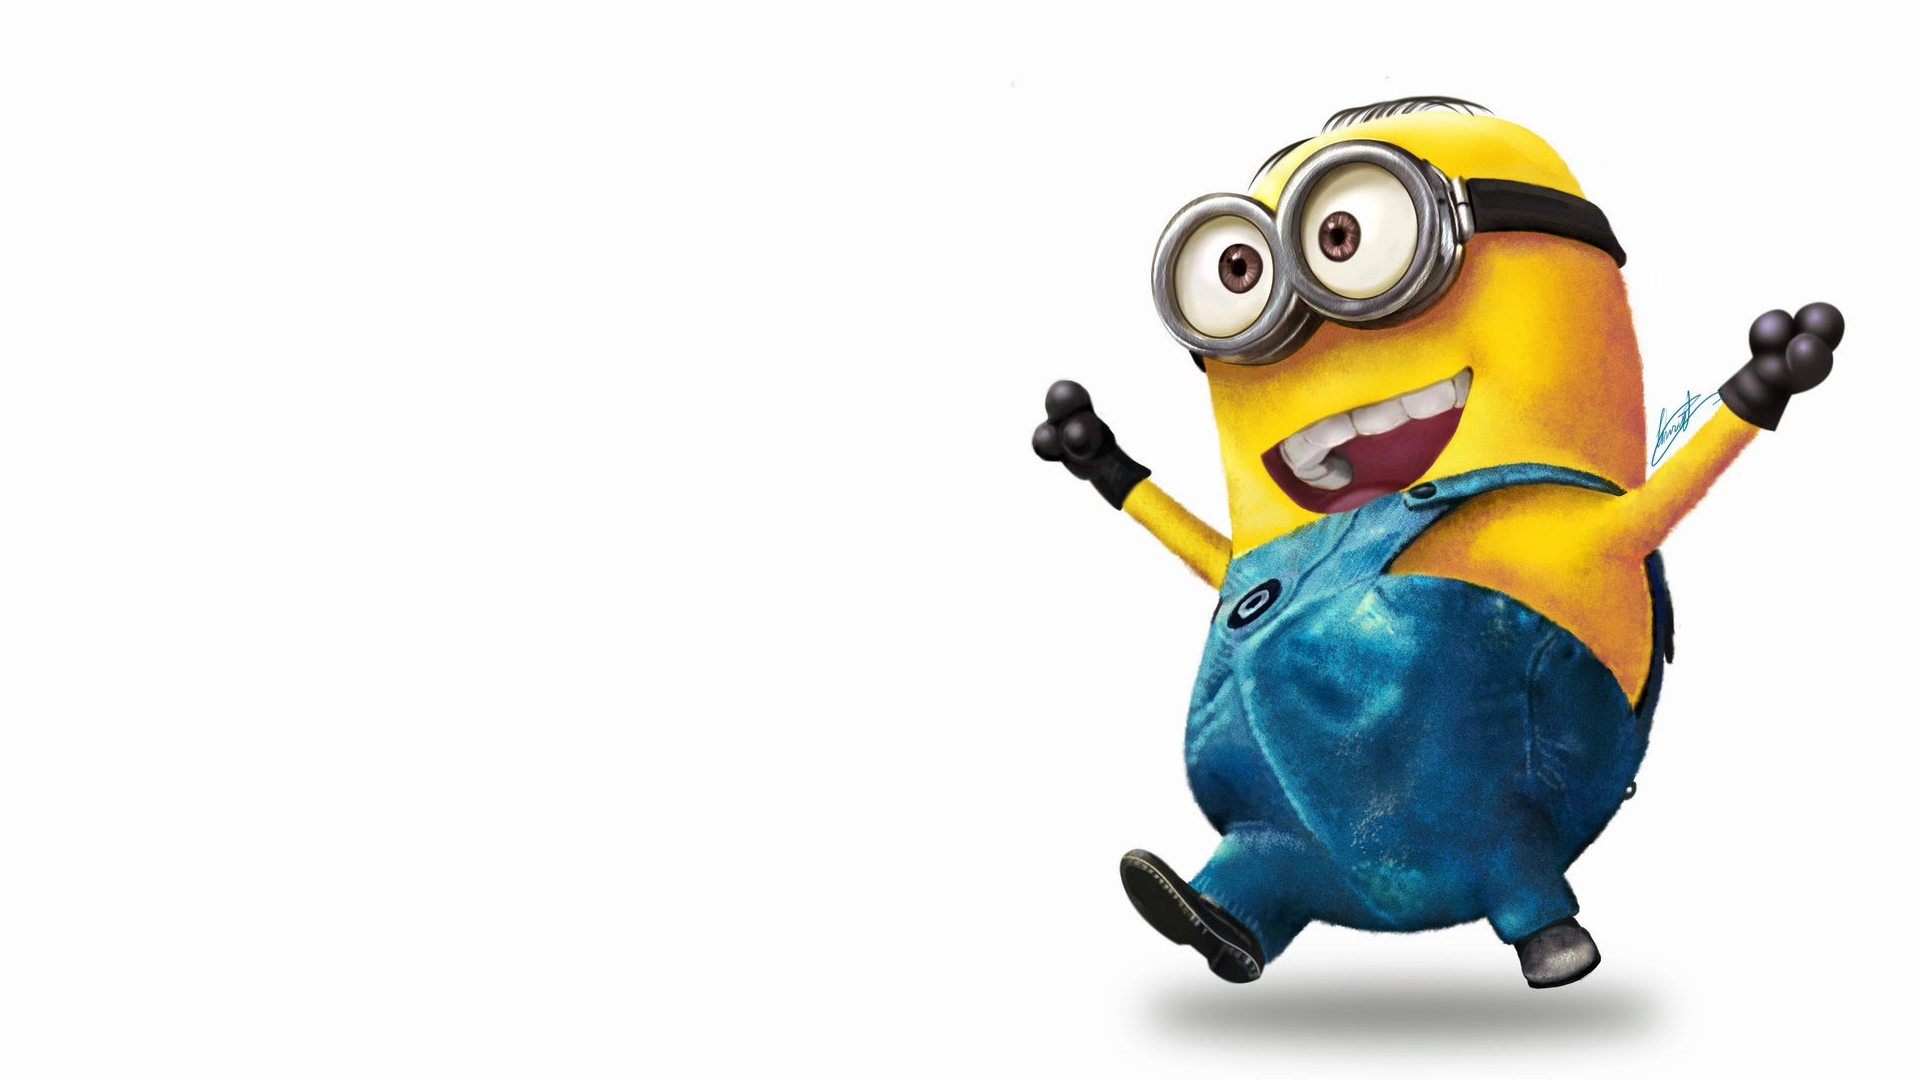 Minions 2015 Animated Film Hd Wallpapers